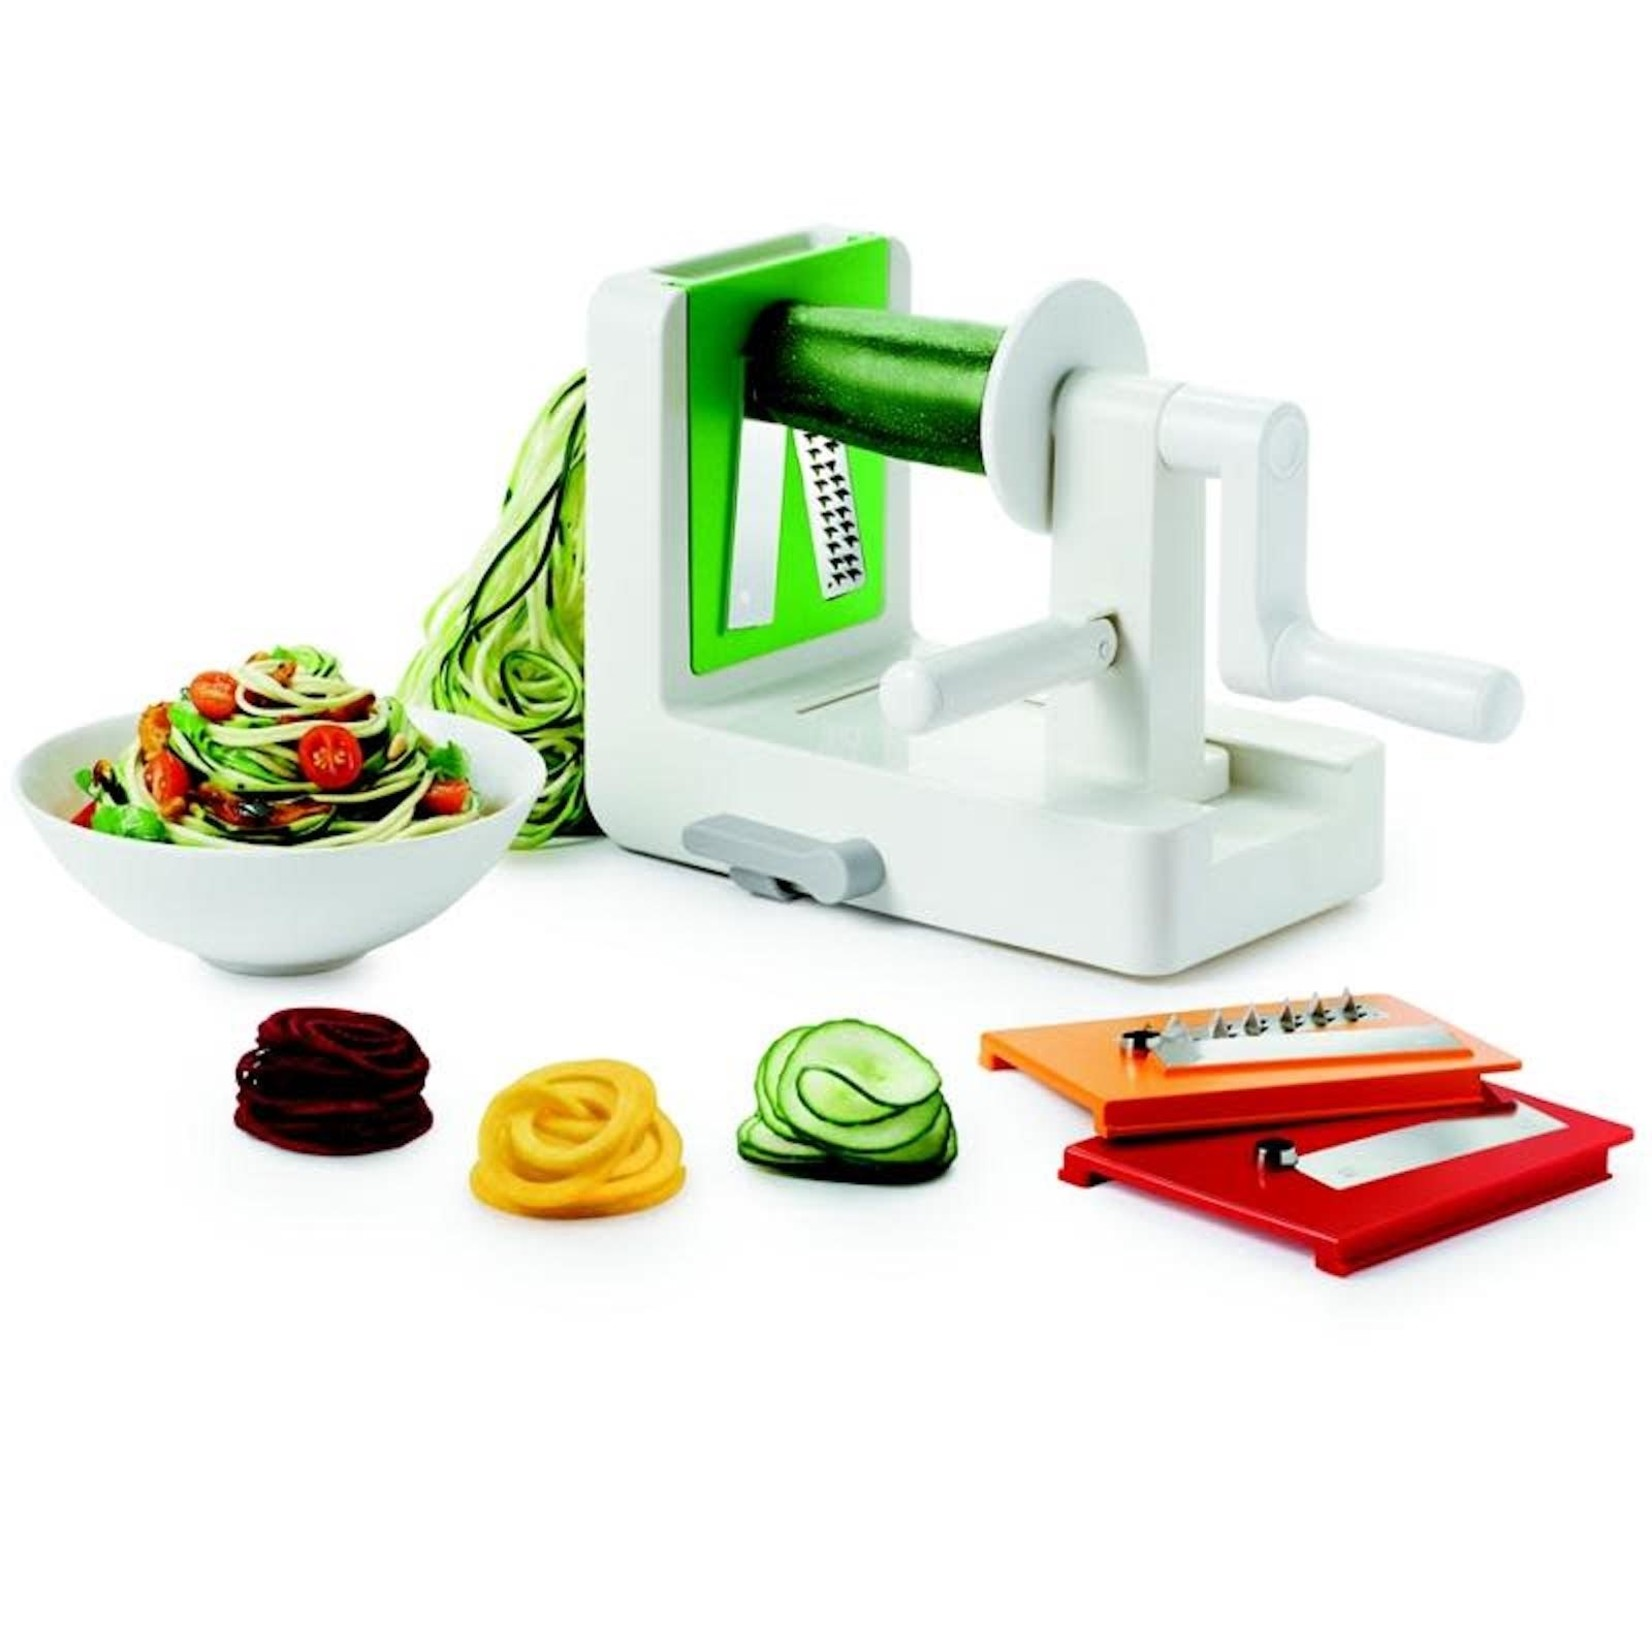 OXO Tabletop Spiralizer